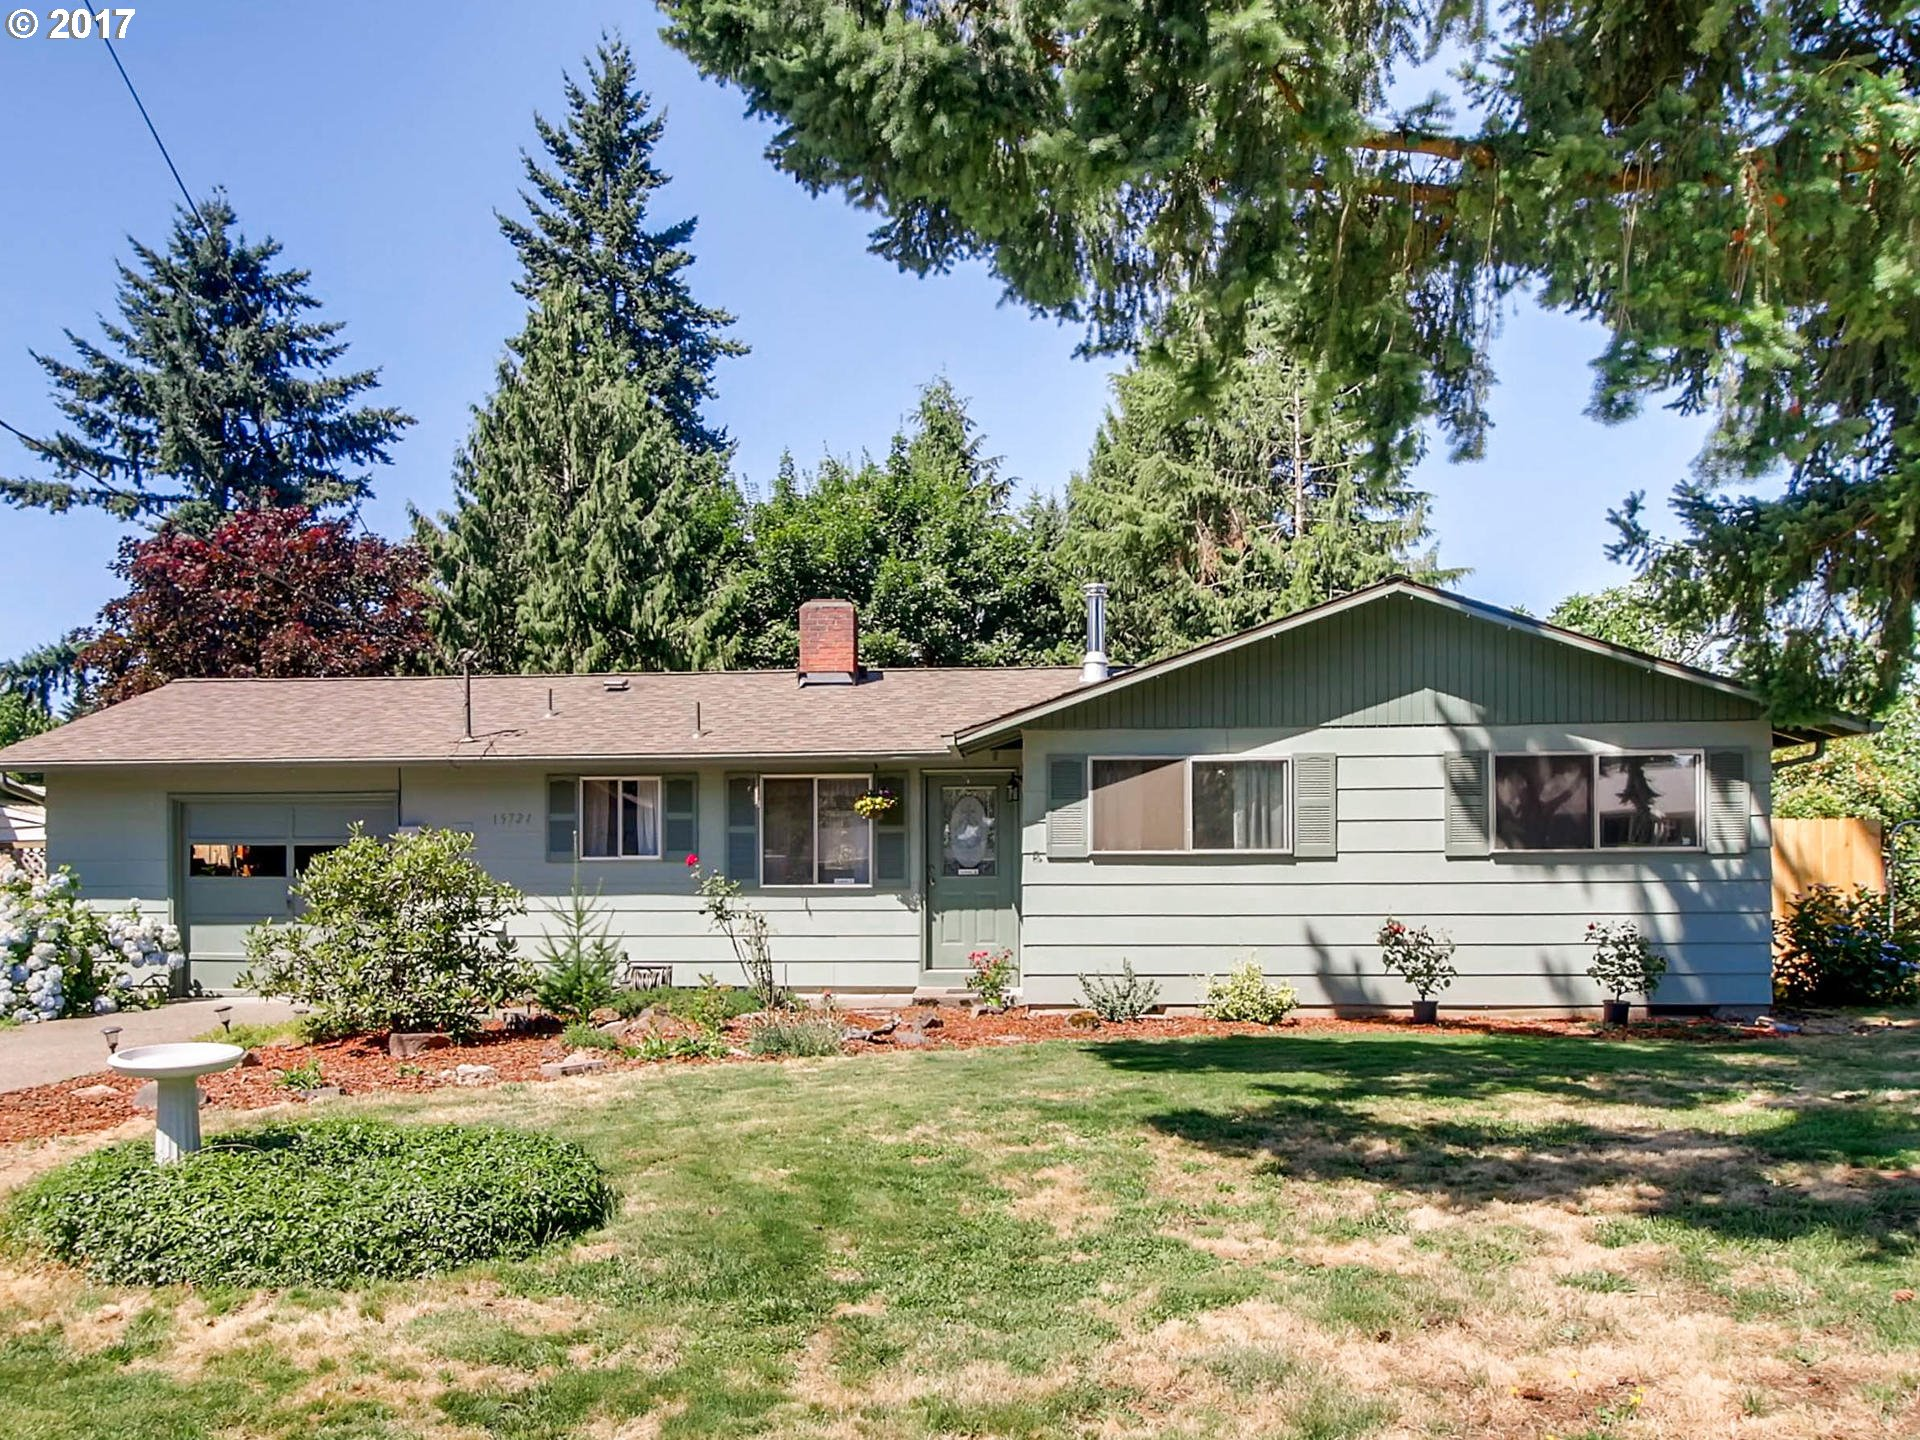 15721 SE THORVILLE AVE, Milwaukie, OR 97267